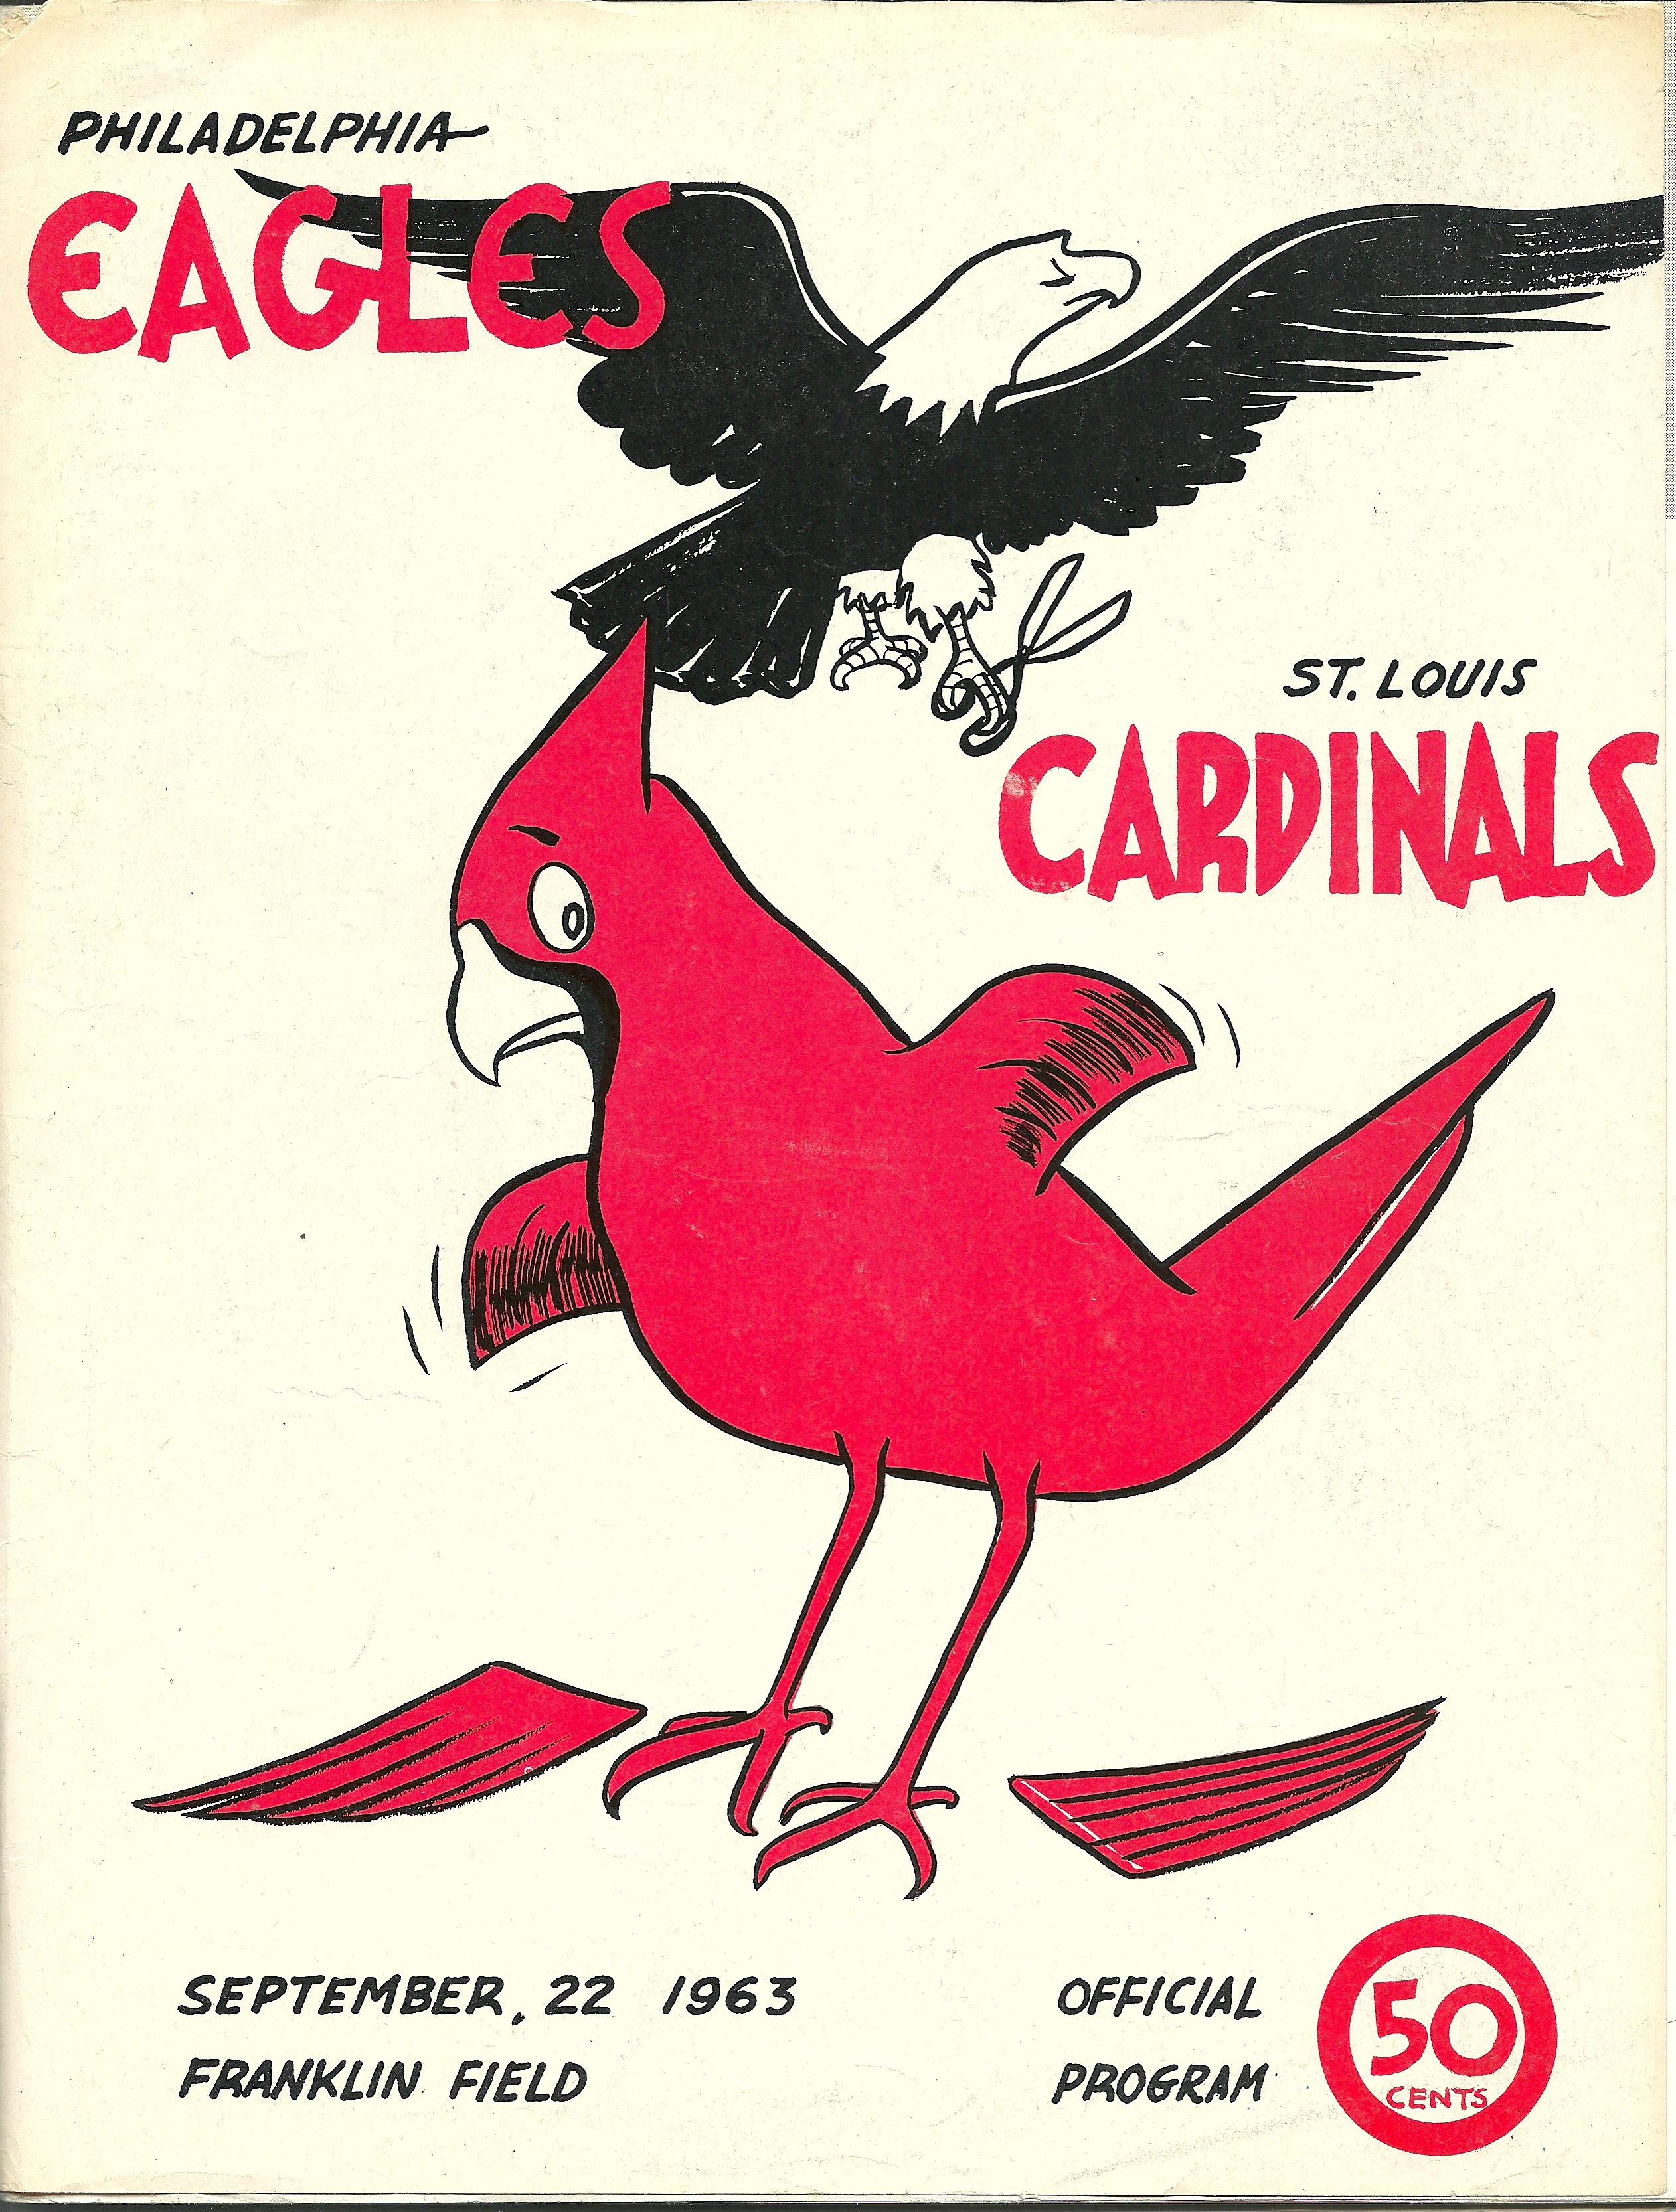 1963 Philadelphia Eagles vs. St. Louis Cardinals